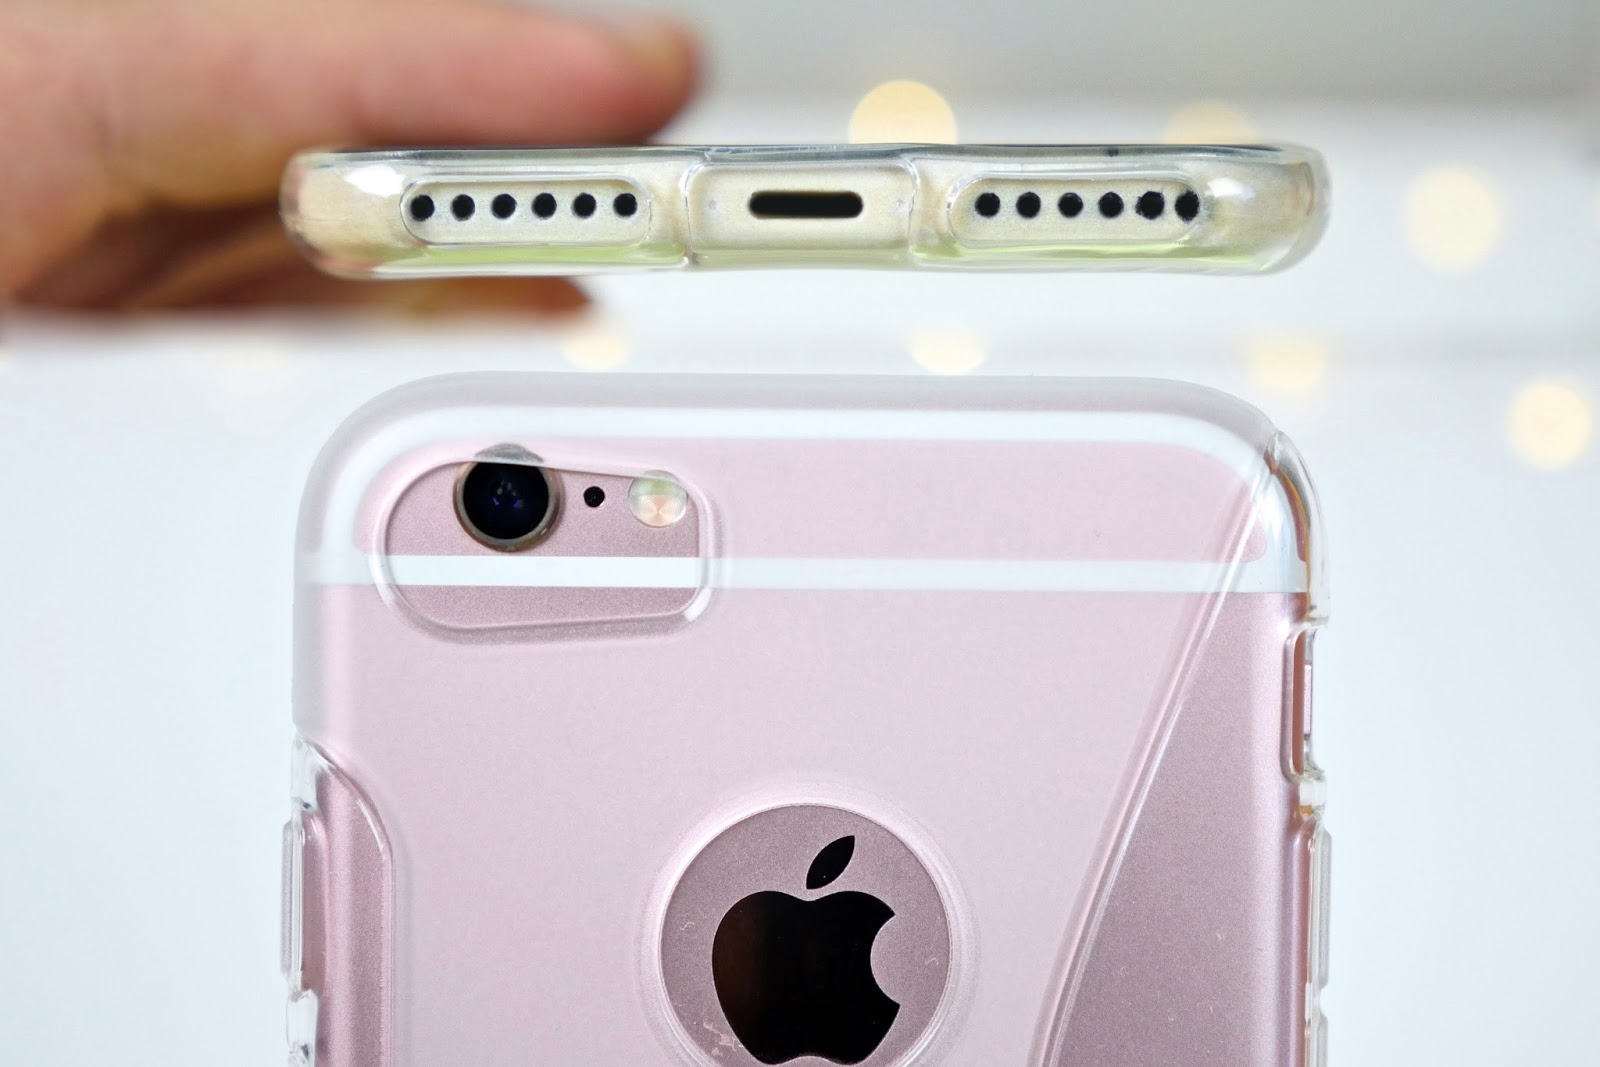 huge discount 70600 c9875 iPhone 7 cases fit the iPhone 6s inside, showing no major change in ...